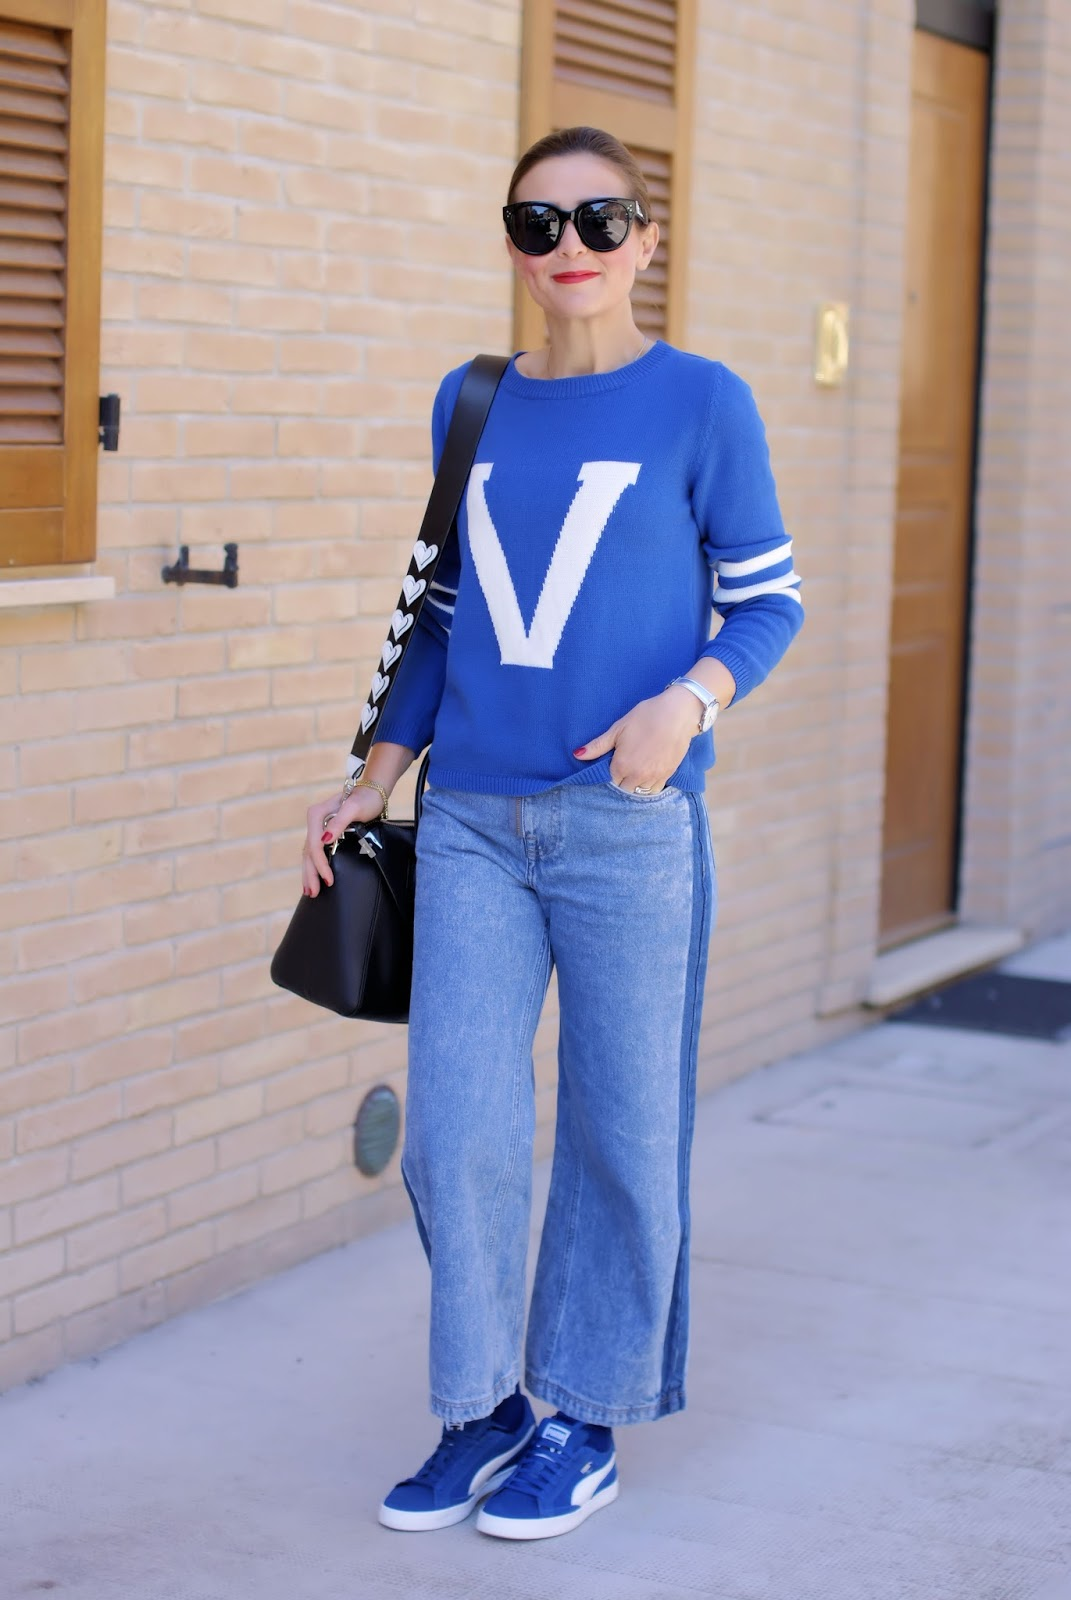 Maglia con V on Fashion and Cookies fashion blog, fashion blogger style